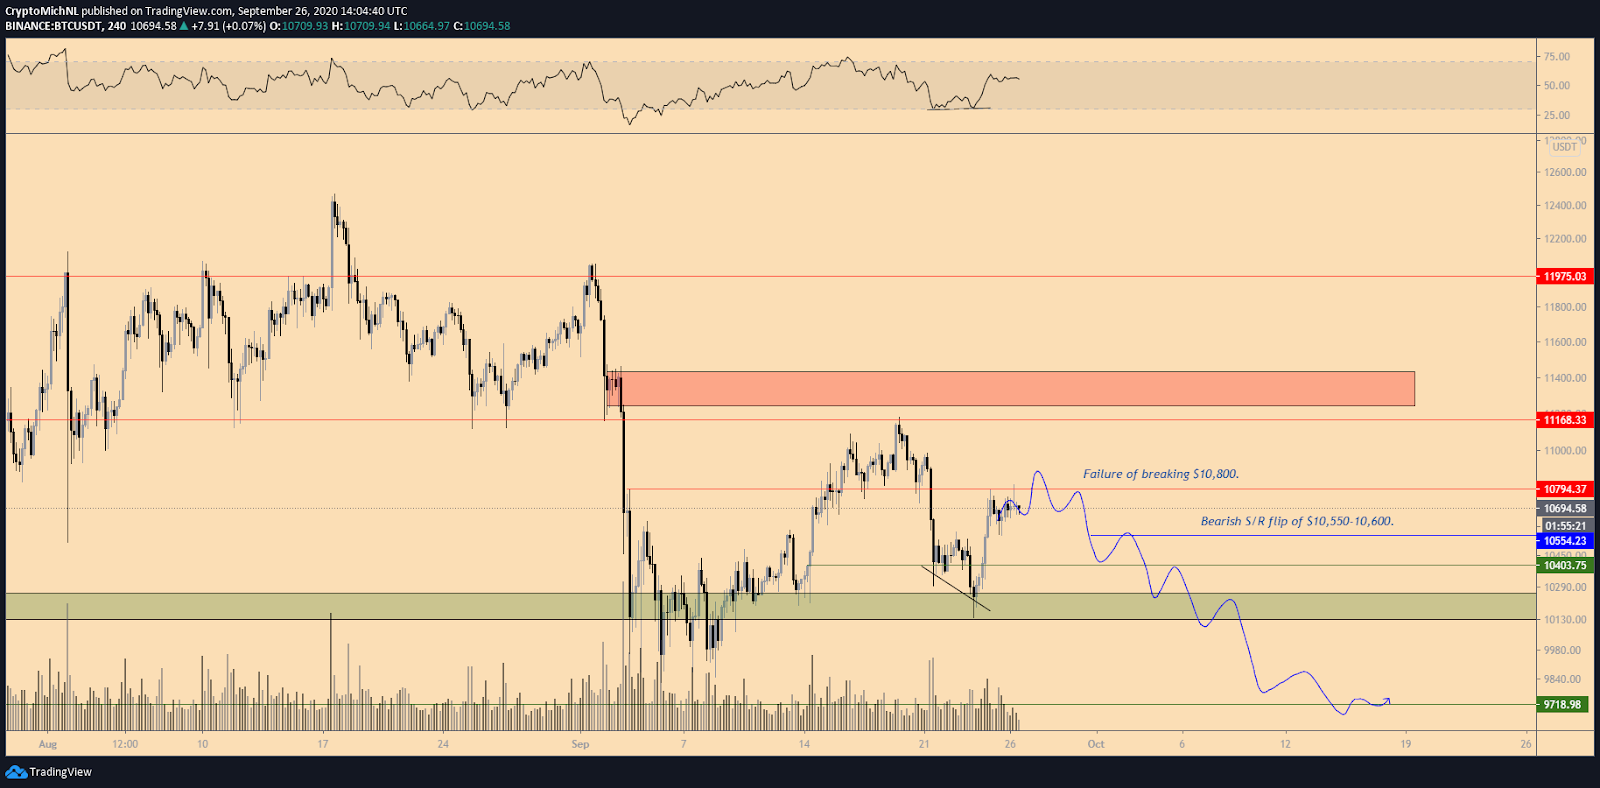 BTC/USD 4-hour chart bearish scenario. Source: TradingView